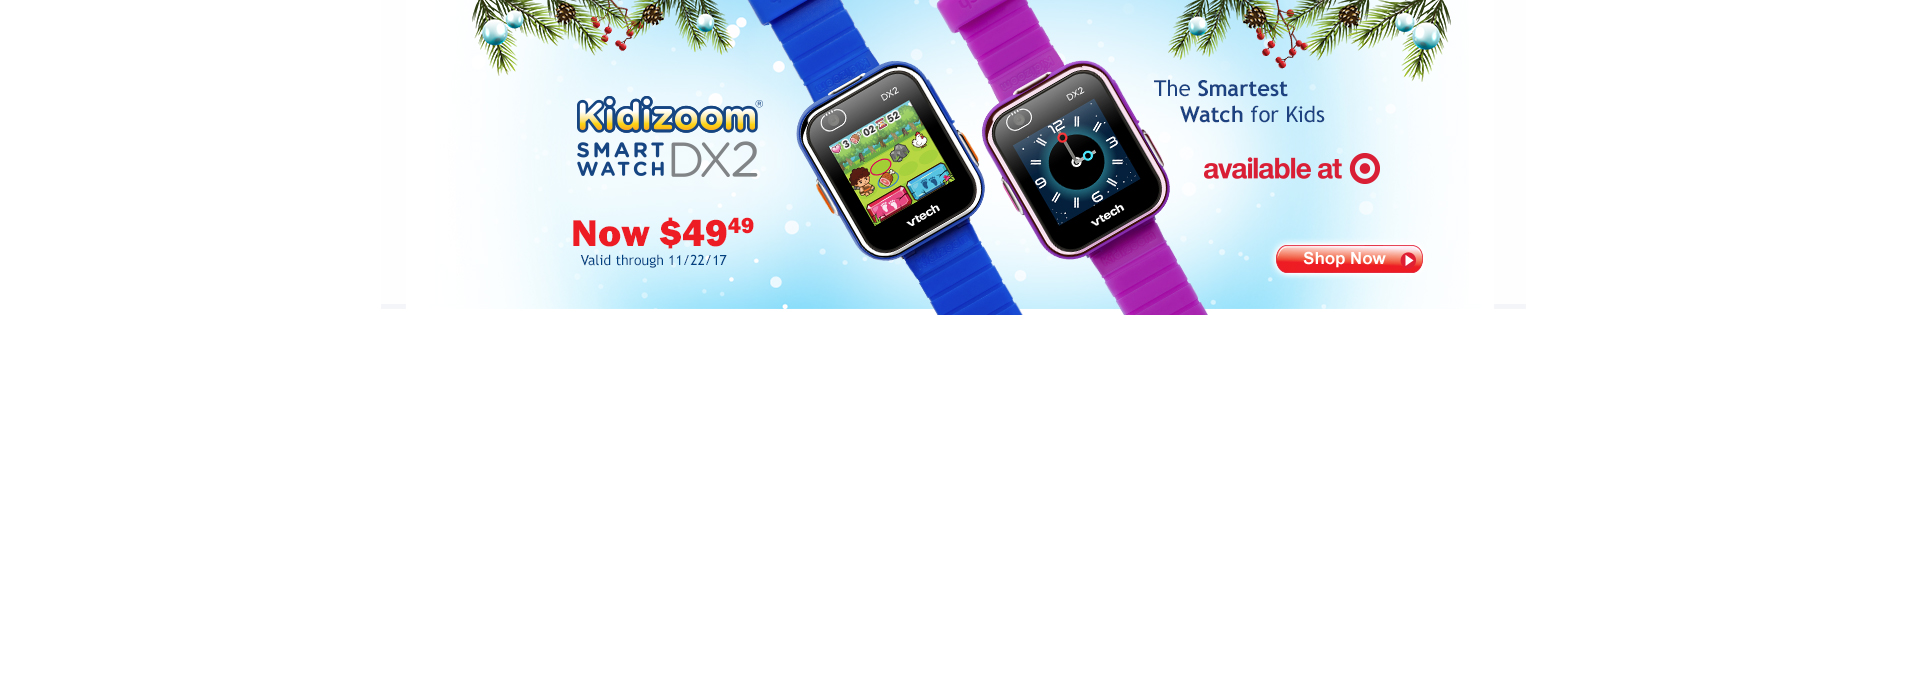 All Kidizoom Smartwatches  - Target 4999